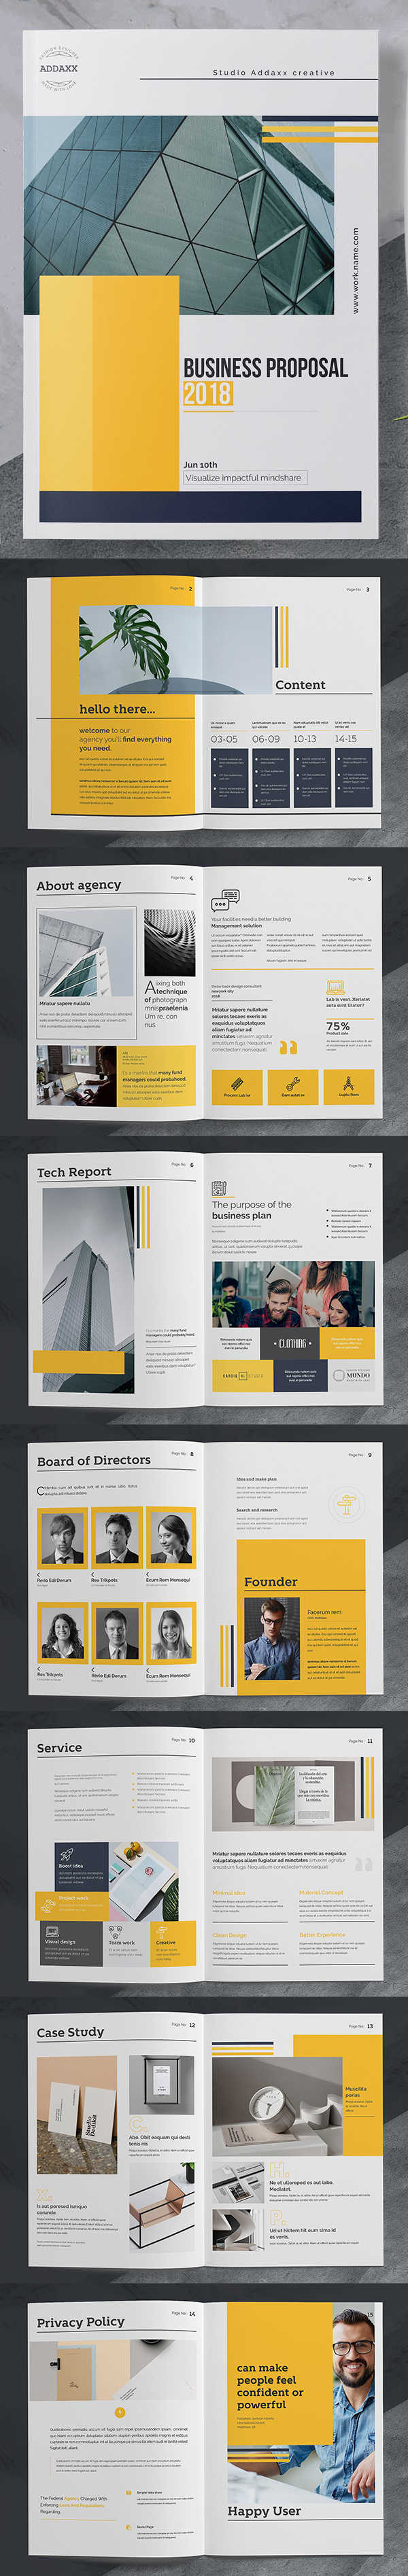 100 Professional Corporate Brochure Templates - 73